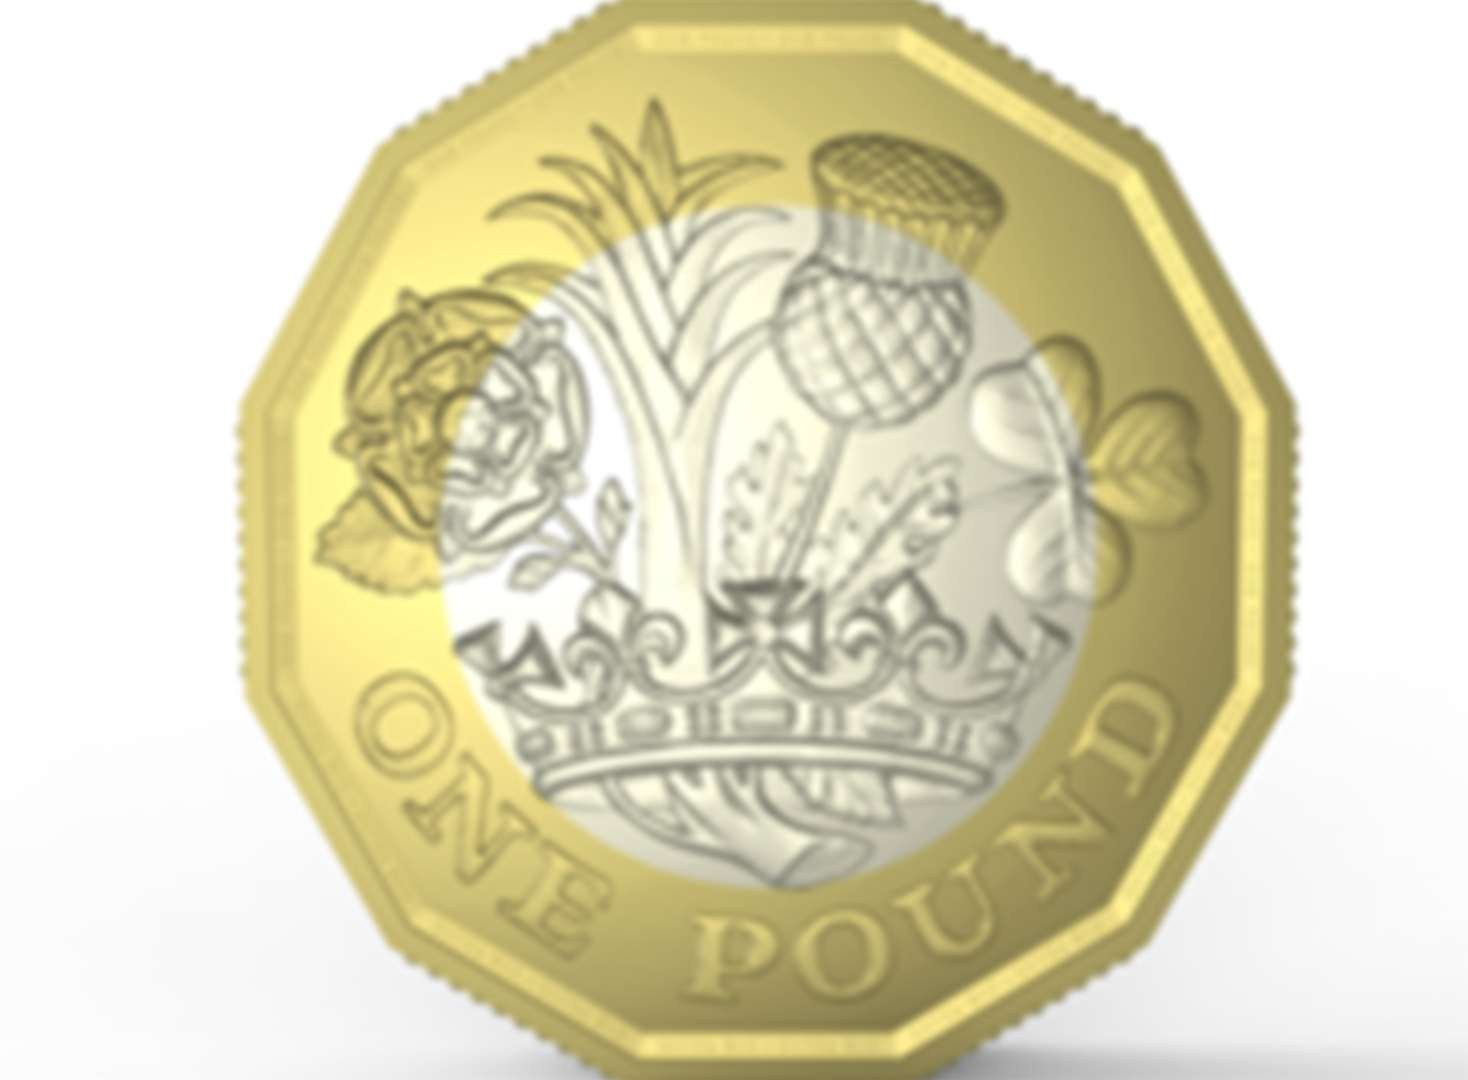 New £1 coin hits the streets